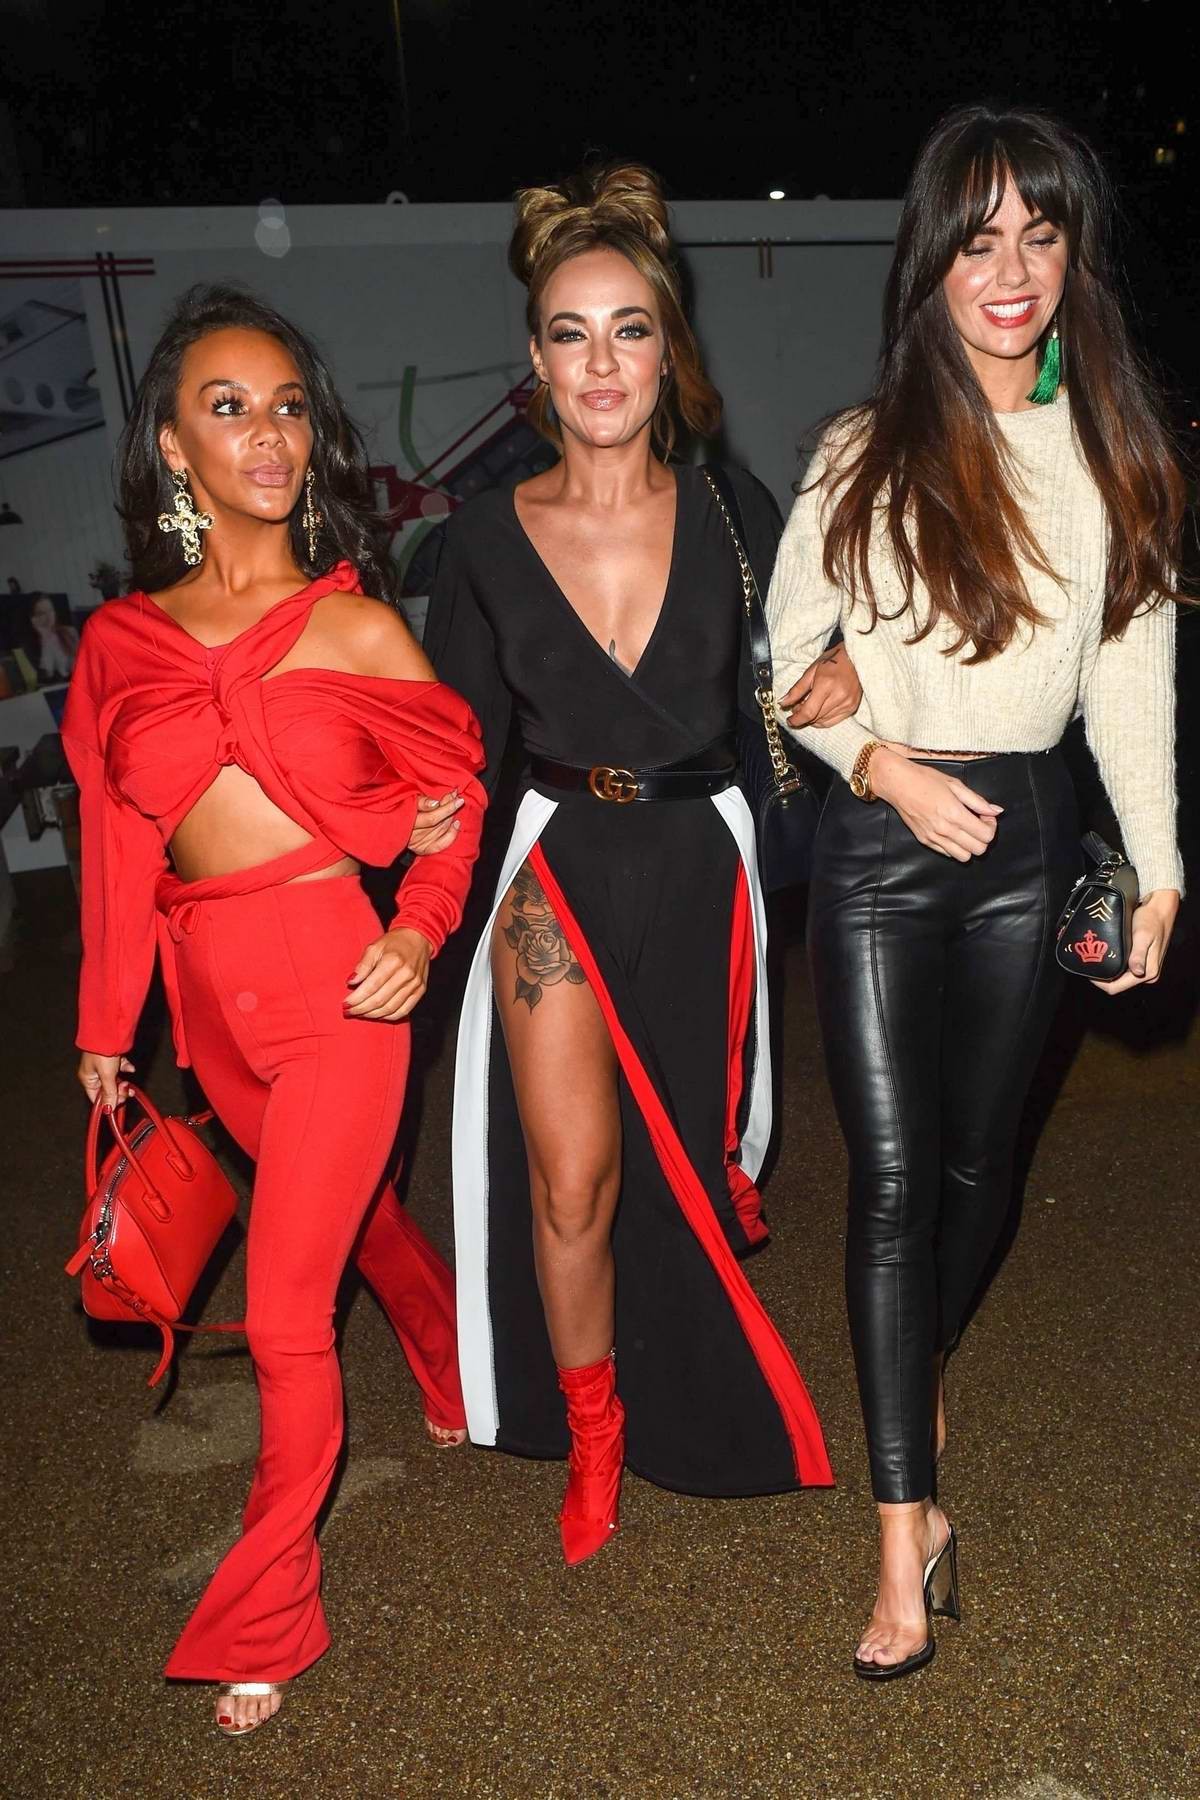 Stephanie Davis, Jennifer Metcalfe & Chelsee Healey enjoys a girls night out at Menagerie Restaurant & Bar in Manchester, UK